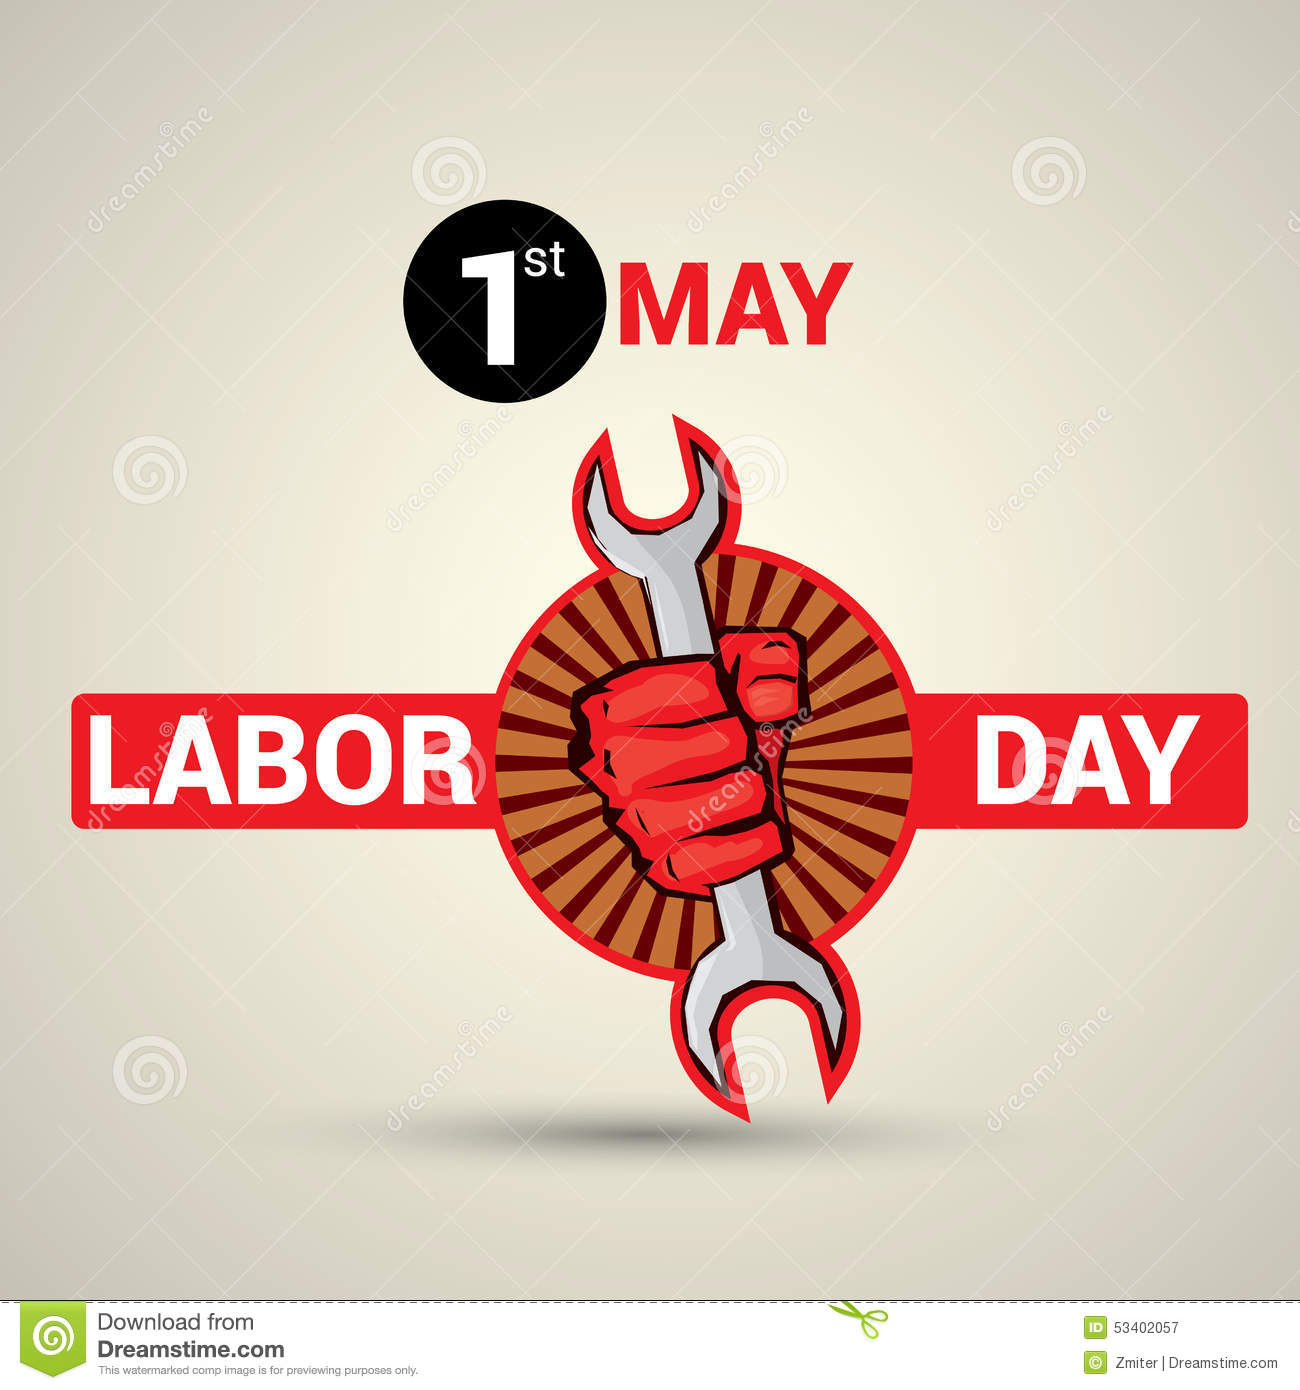 Poster design with text 1st may labor day stock vector poster design with text 1st may labor day badge labour kristyandbryce Image collections